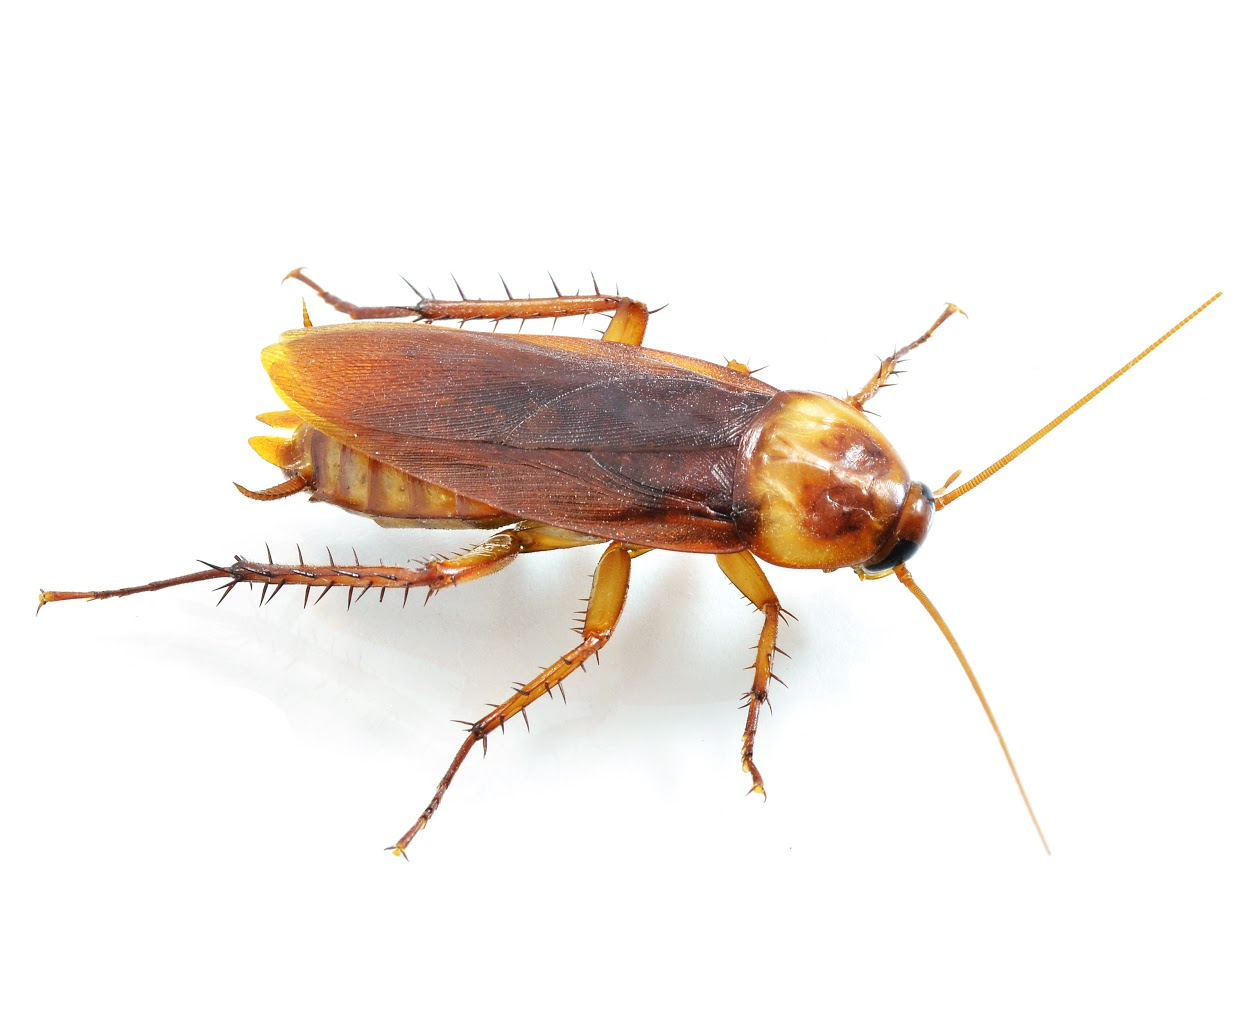 Do It Yourself Pest Control Tucson Oracle Pest Control Roach Spray Scorpion Extermination Tucson